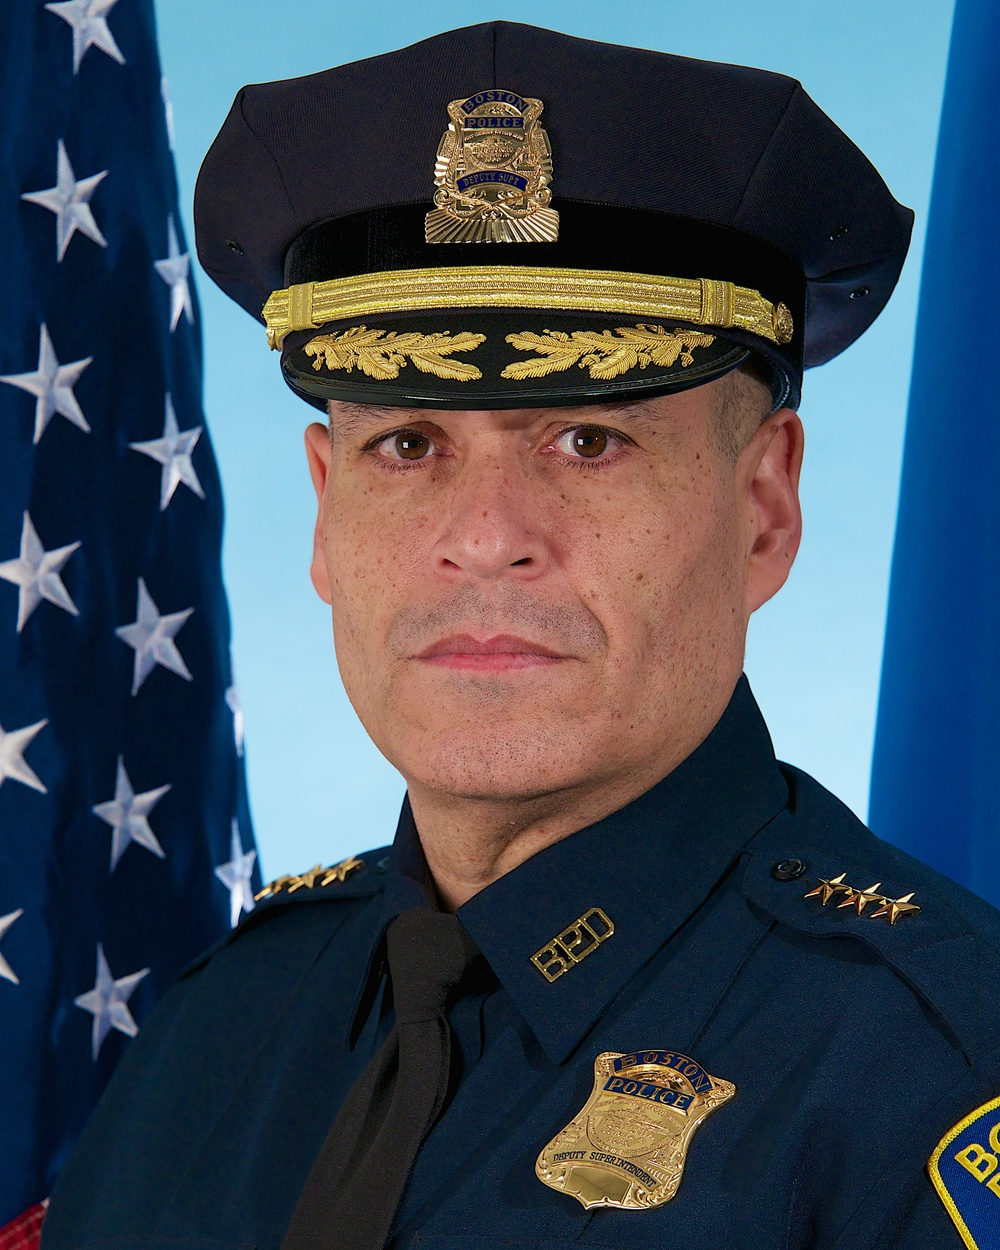 DEPUTY SUPERINTENDENT JOHN BROWN